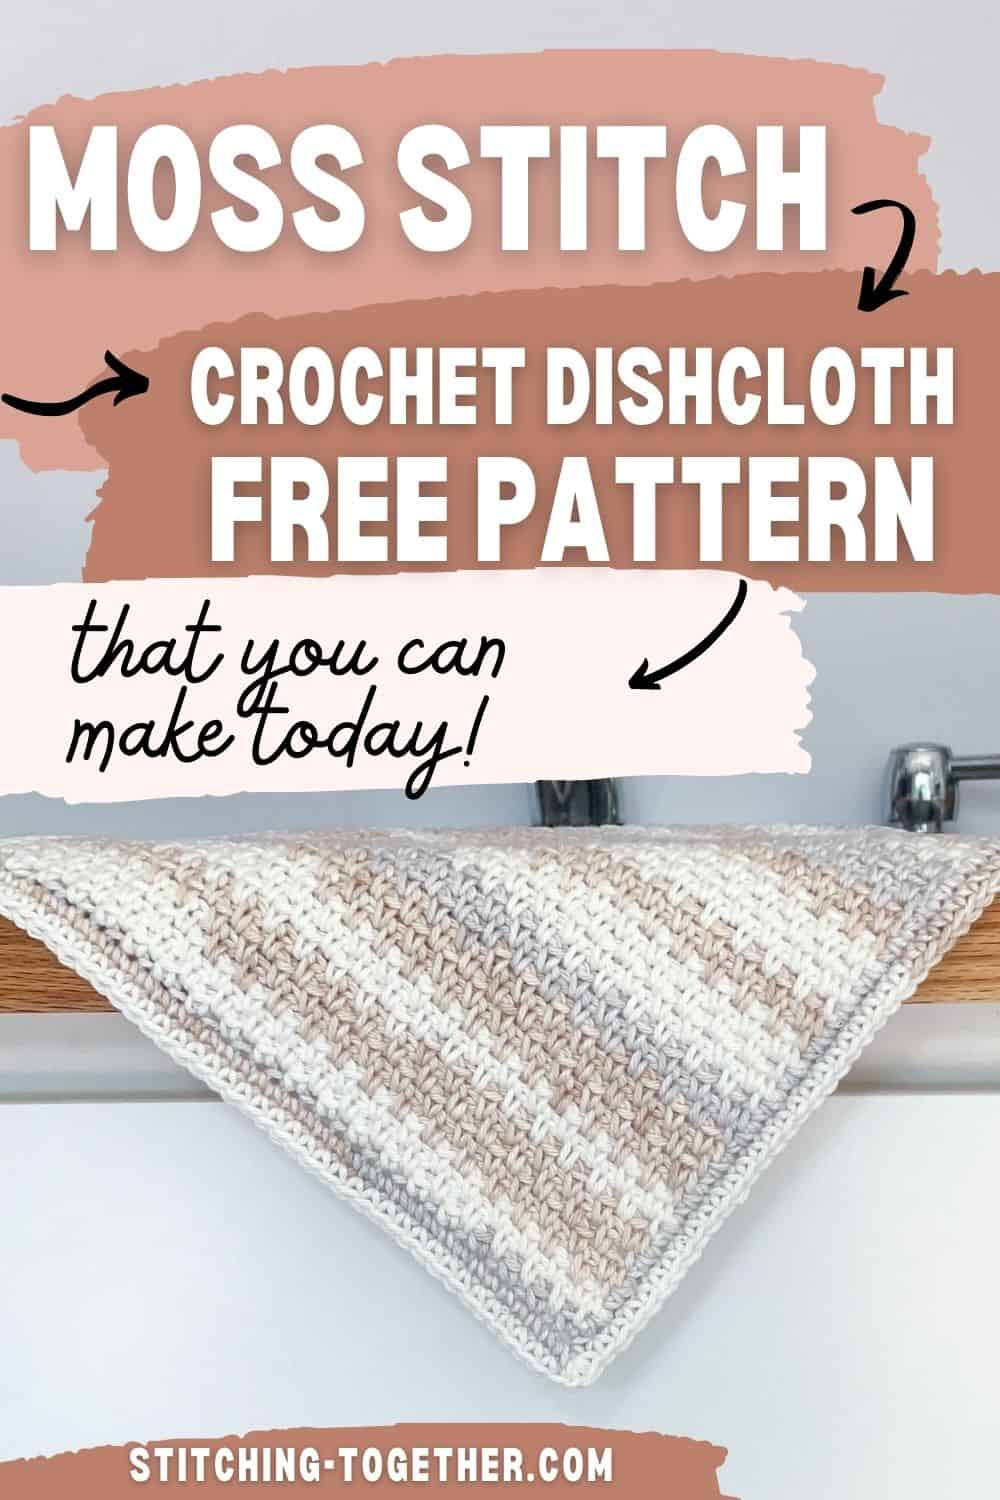 striped crochet washcloth hanging over the side of a counter pin image with text: moss stitch crochet dishcloth free pattern that you can make today